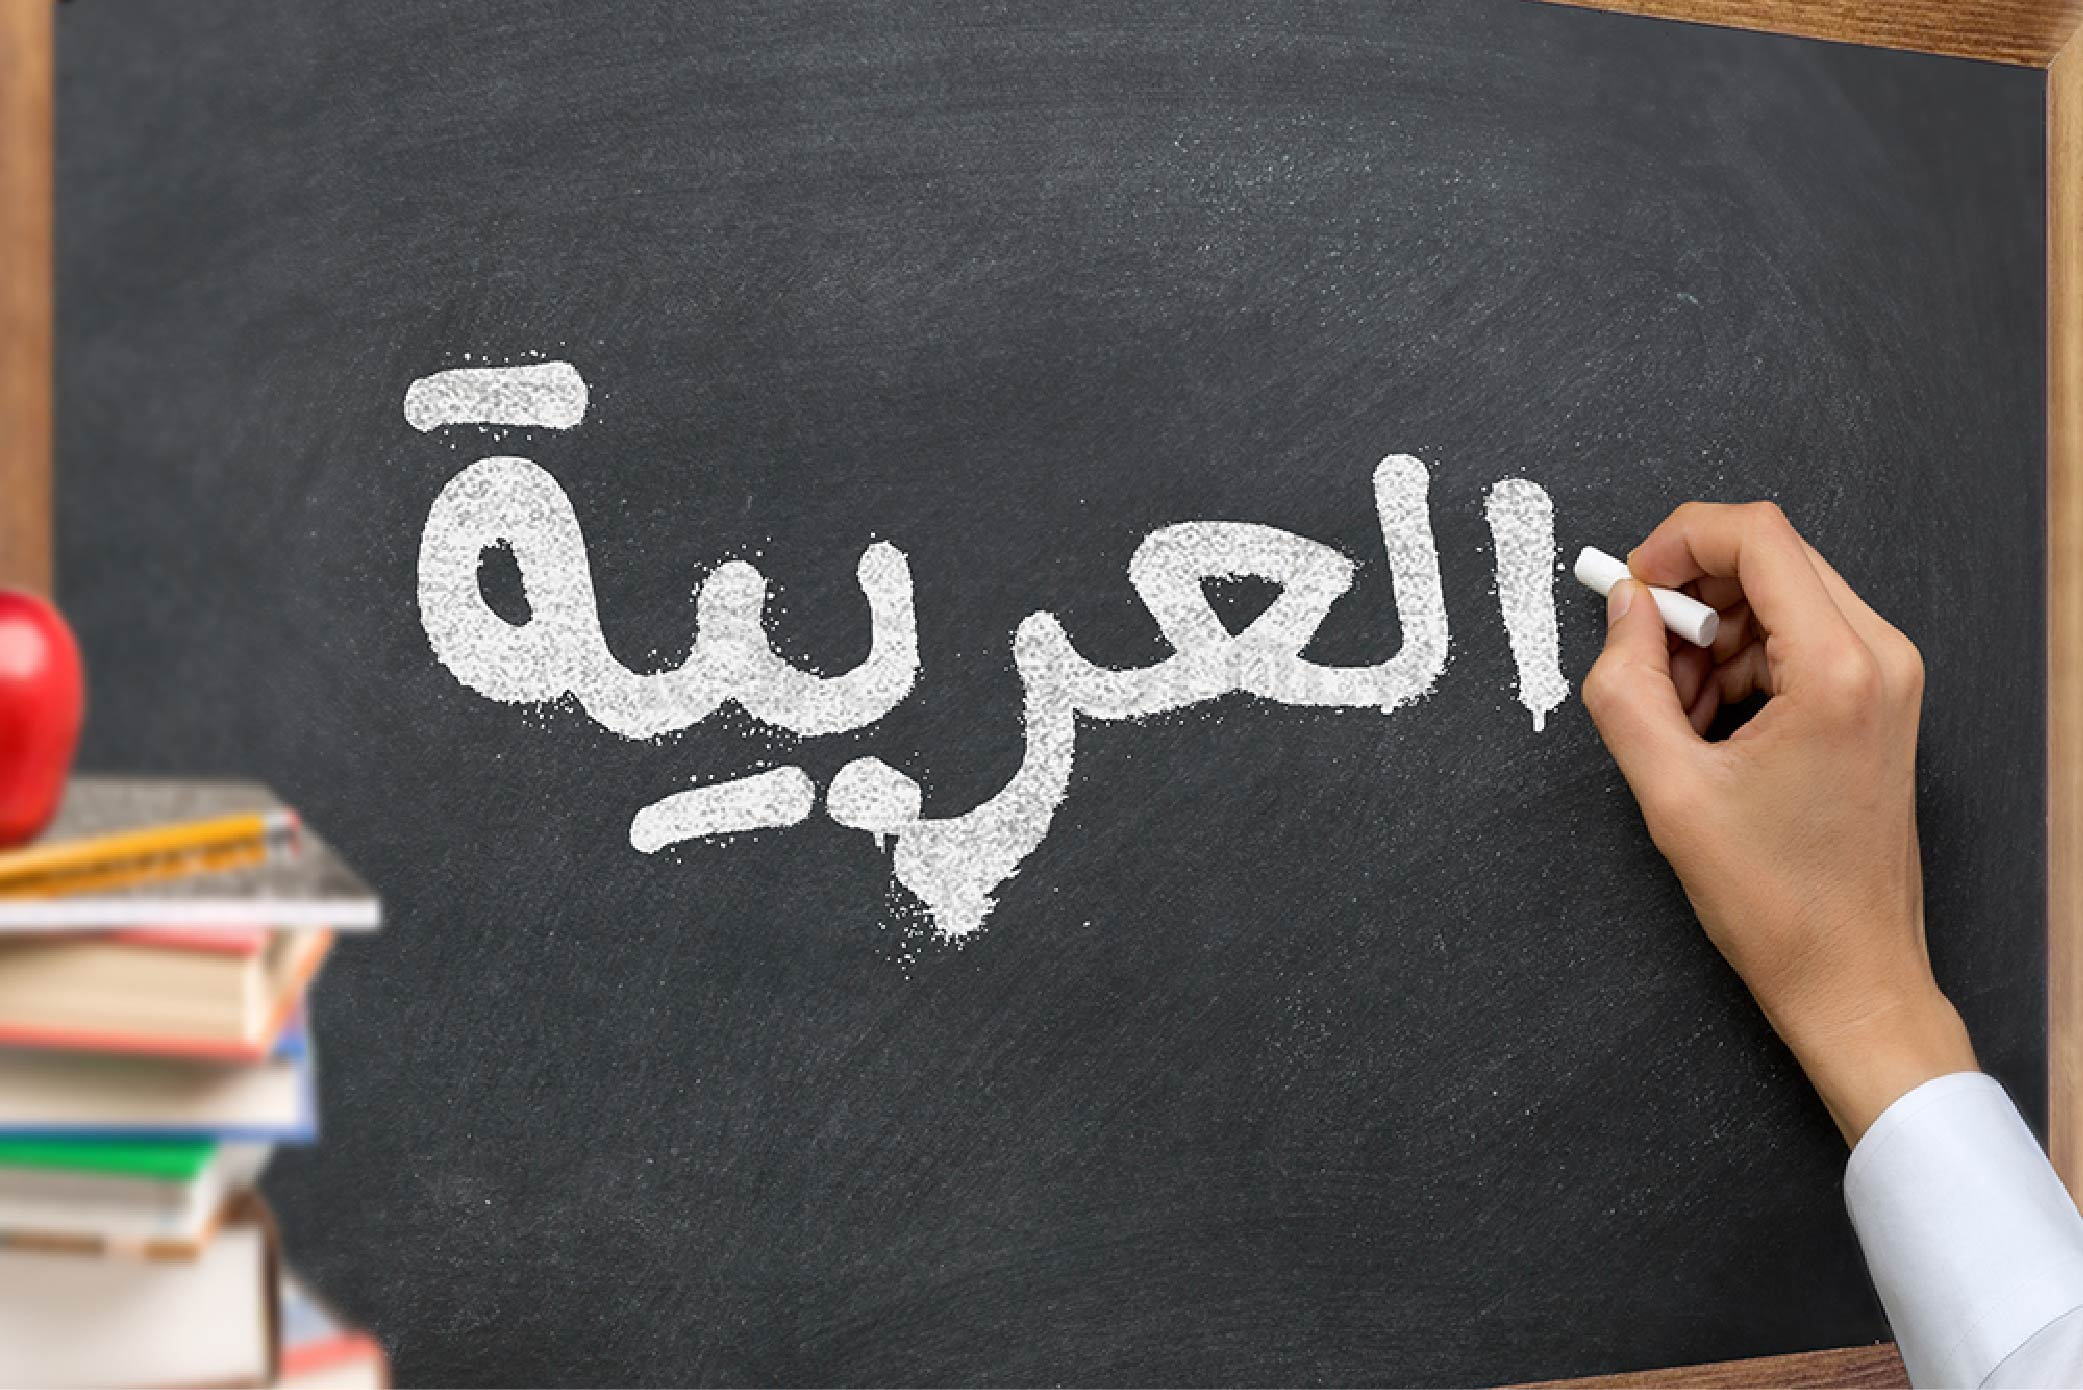 Arabic grammar is not that hard to crack down if you have the right tool. Check out our easy Arabic presentation on how to learn Arabic grammar.